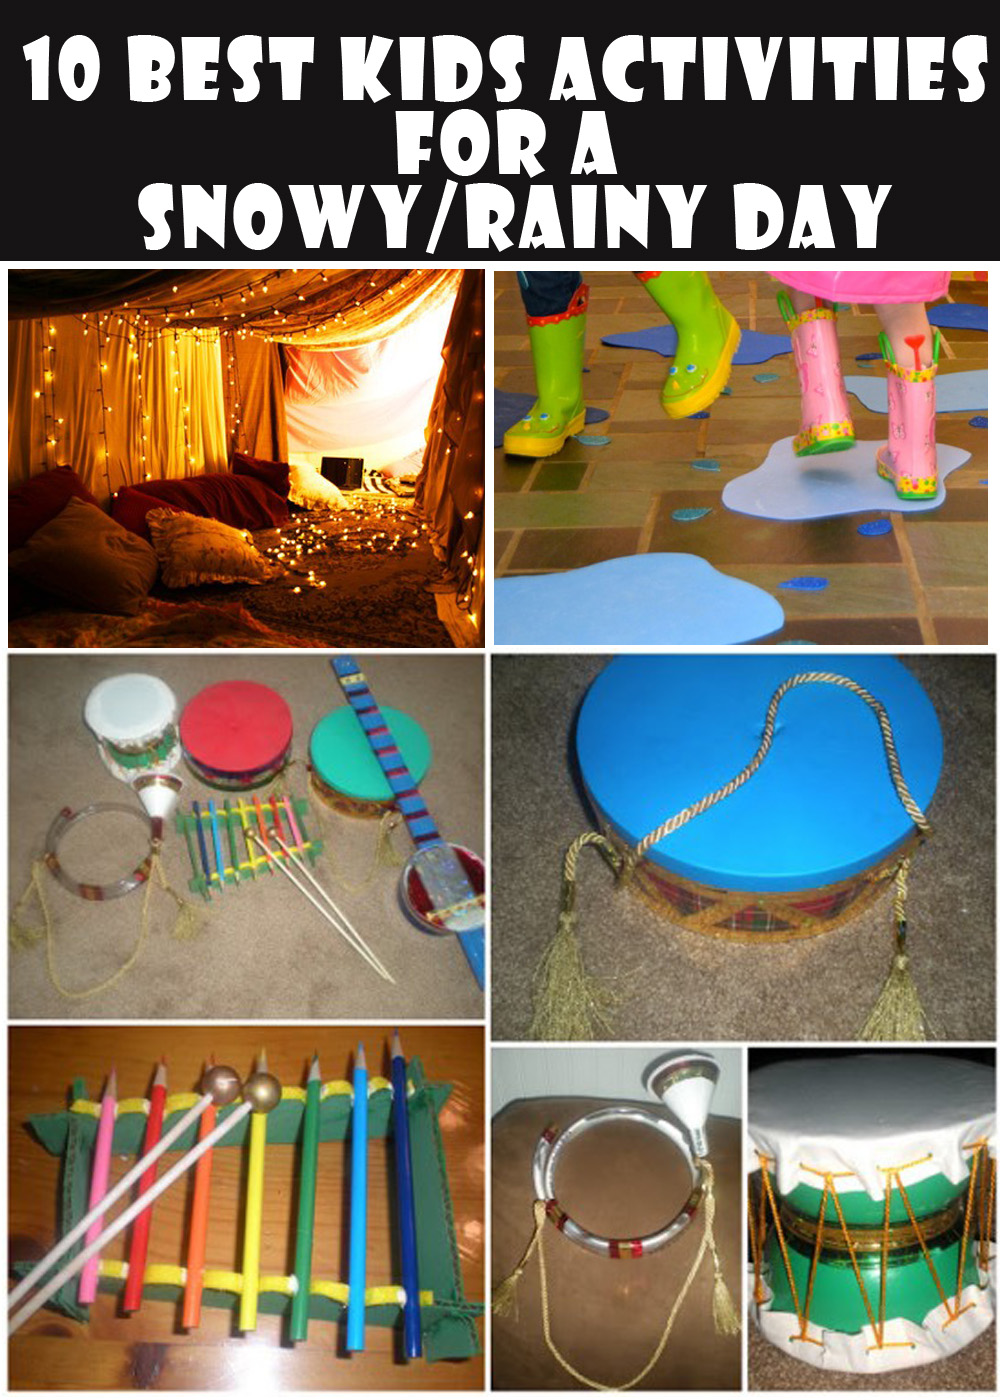 10 Awesome Indoor Activities To Do With Your Kids On A